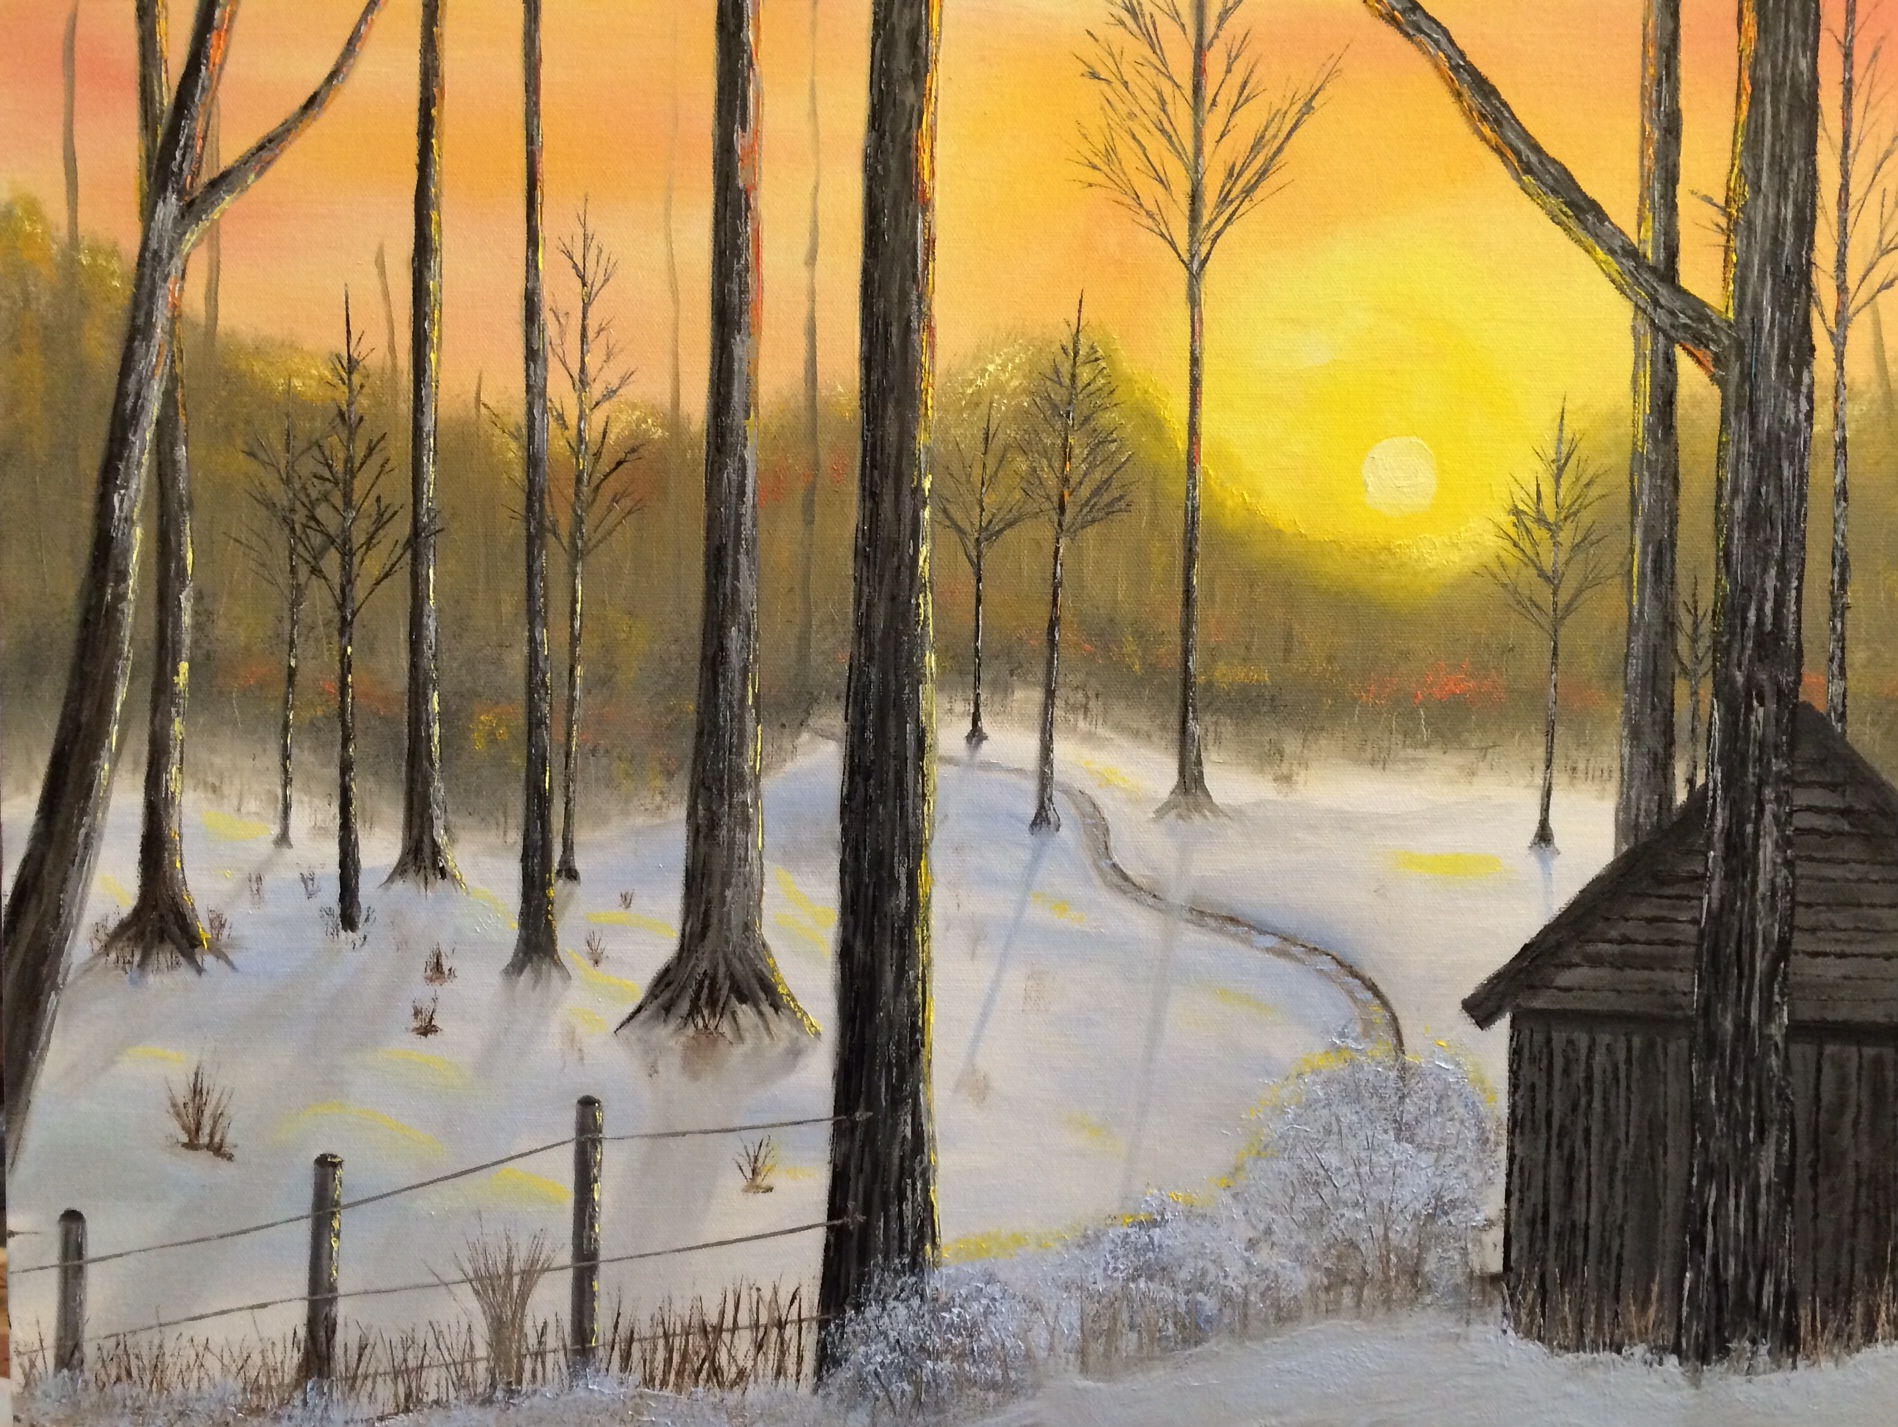 This is my attempt at a sunset winter scene.